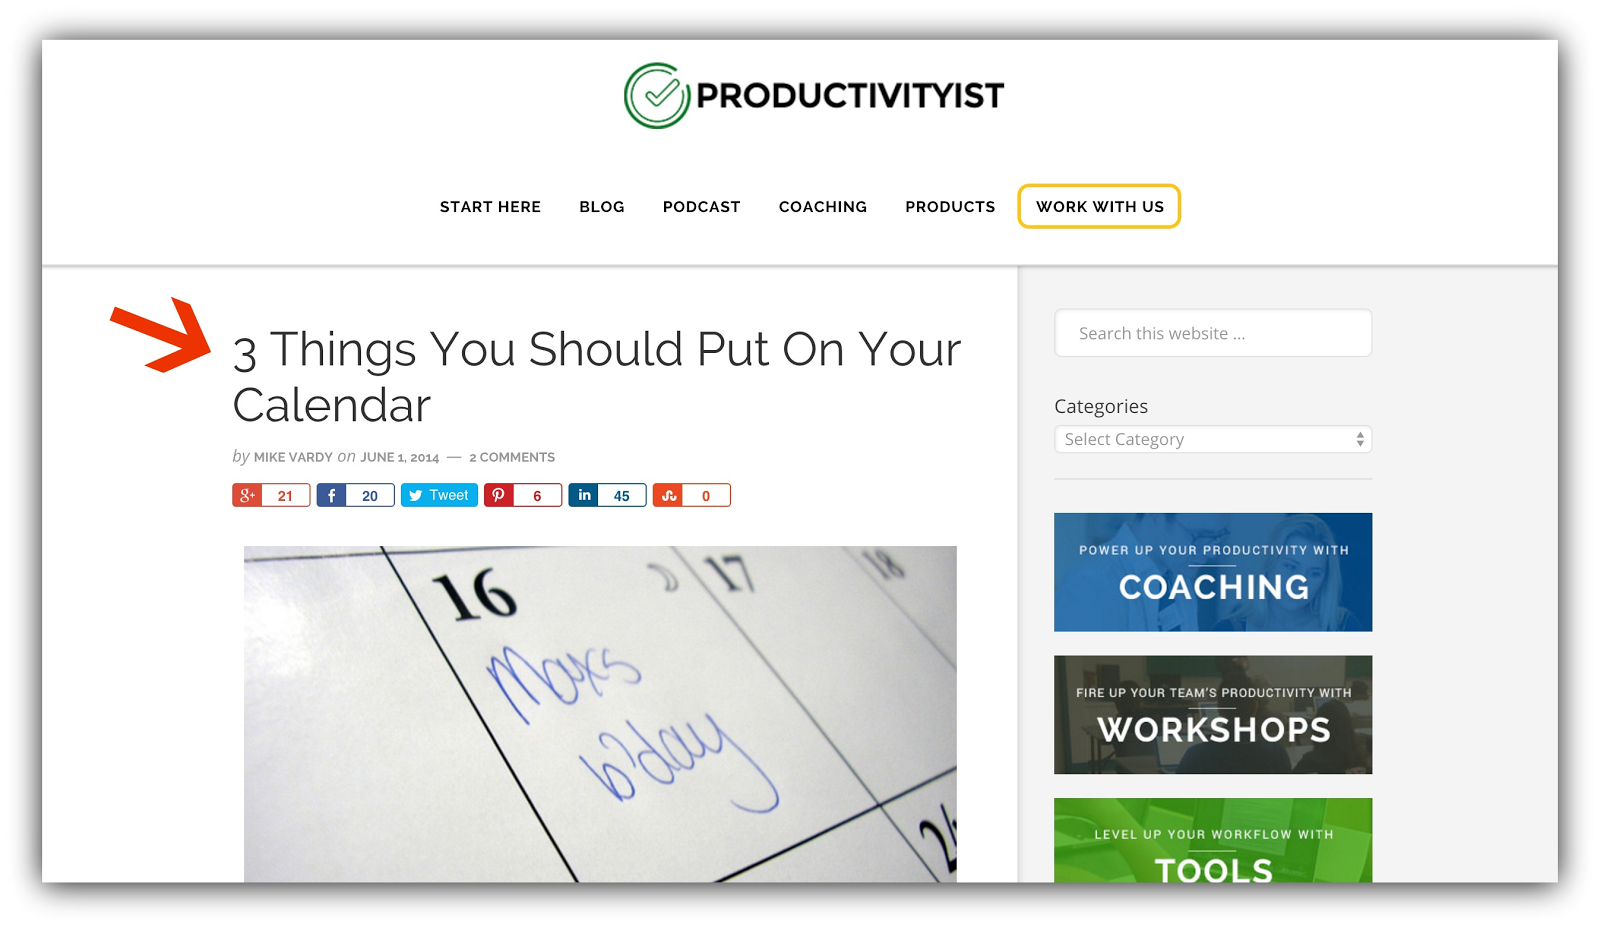 productivityist 3 things calendar